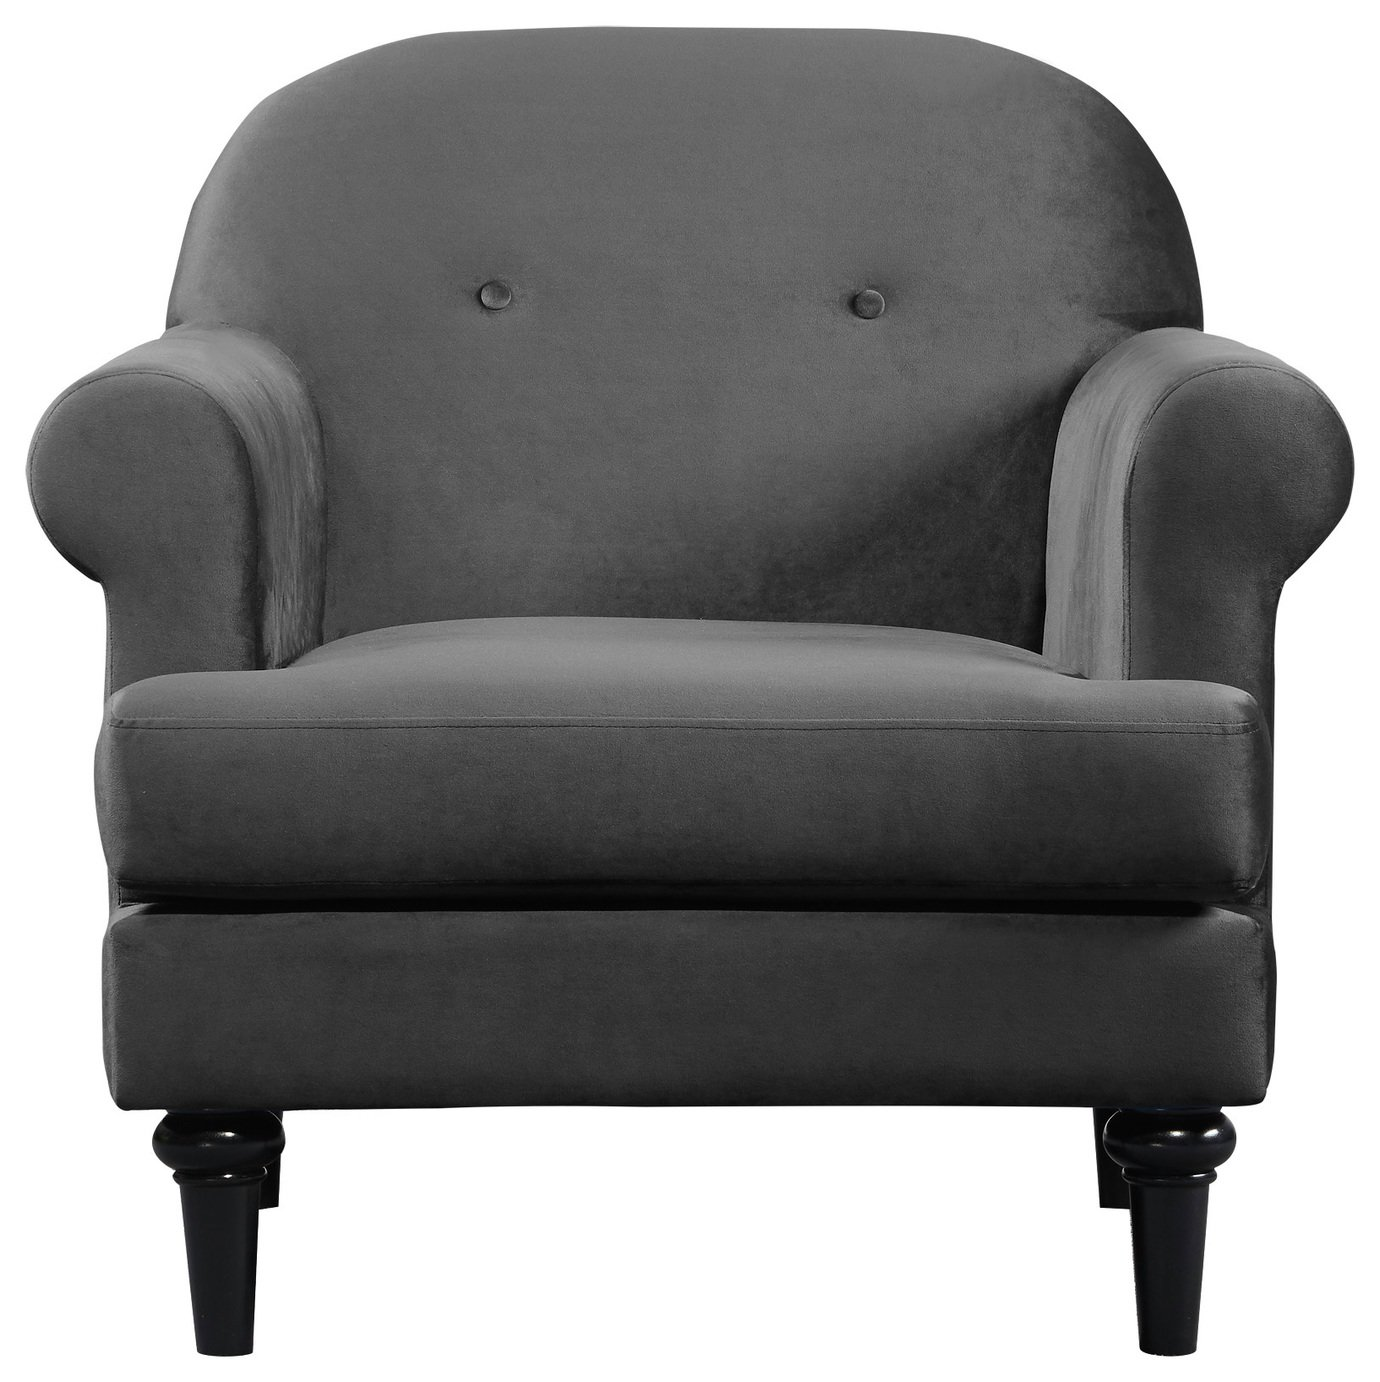 Argos Home Whitney Velvet Armchair - Charcoal